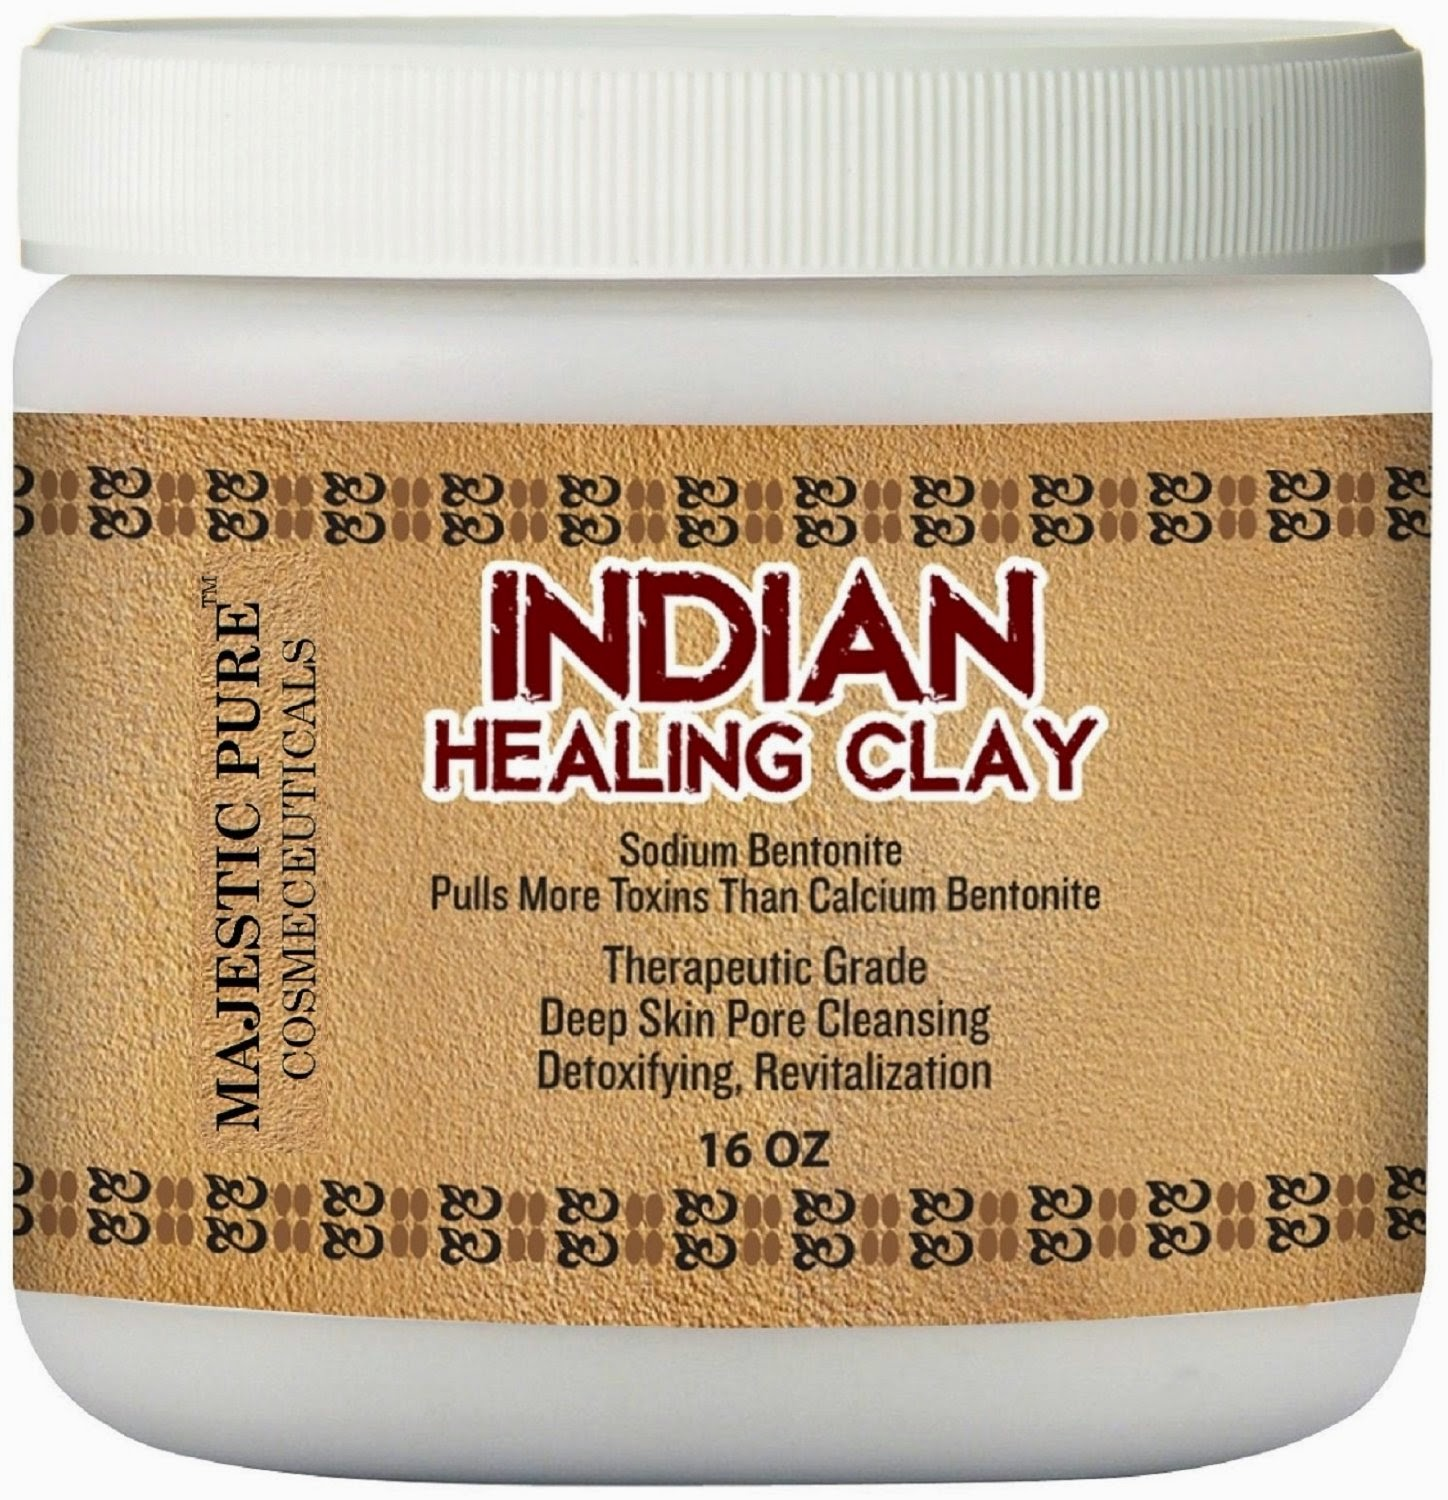 Indian Healing Clay Spa Treatment At Home on Fashion Beyond Forty